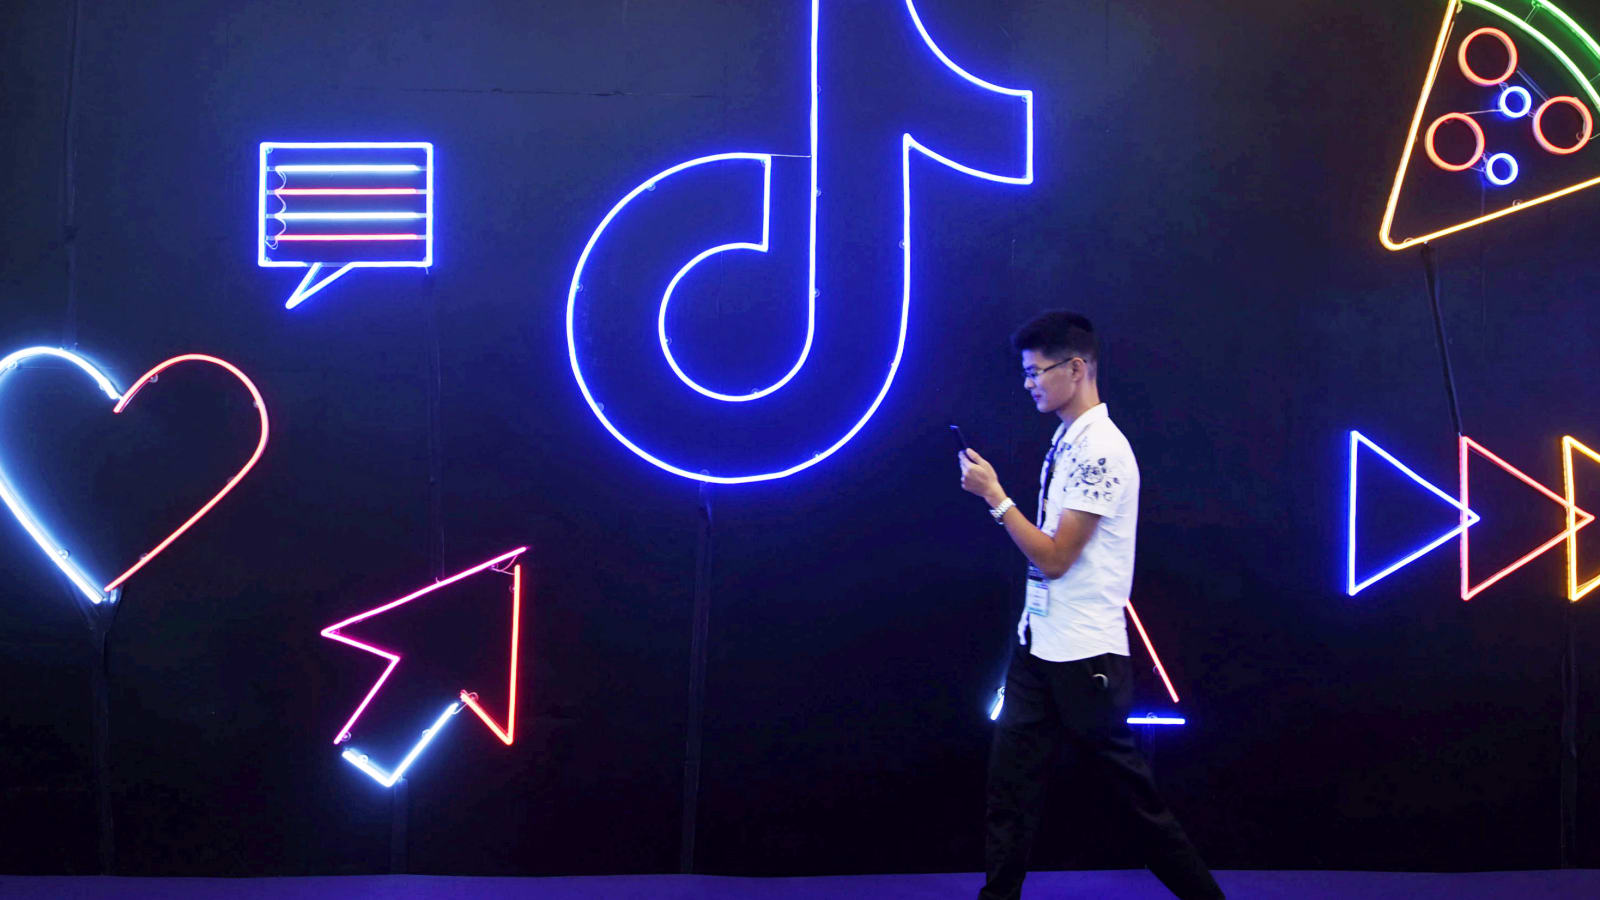 HOW TO OPEN TIKTOK IN PAKISTAN: EVERYTHING WE KNOW HOW TO DO